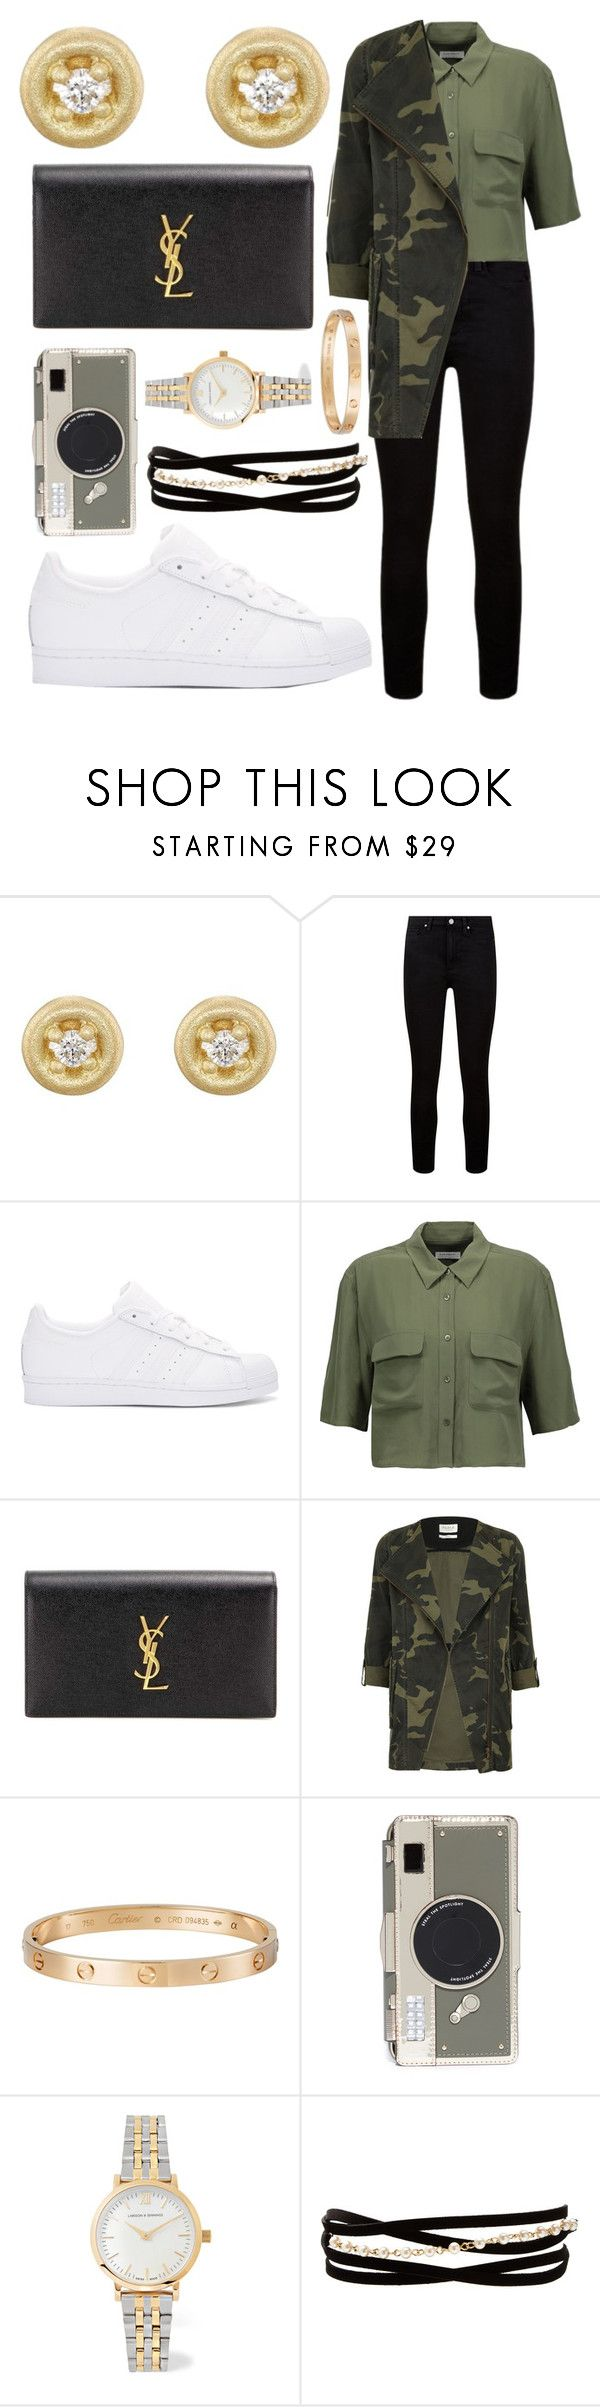 """Untitled #1525"" by mayanderson ❤ liked on Polyvore featuring Tate, Paige Denim, adidas Originals, Equipment, Yves Saint Laurent, Parka London, Cartier, Kate Spade, Larsson & Jennings and Kenneth Jay Lane"